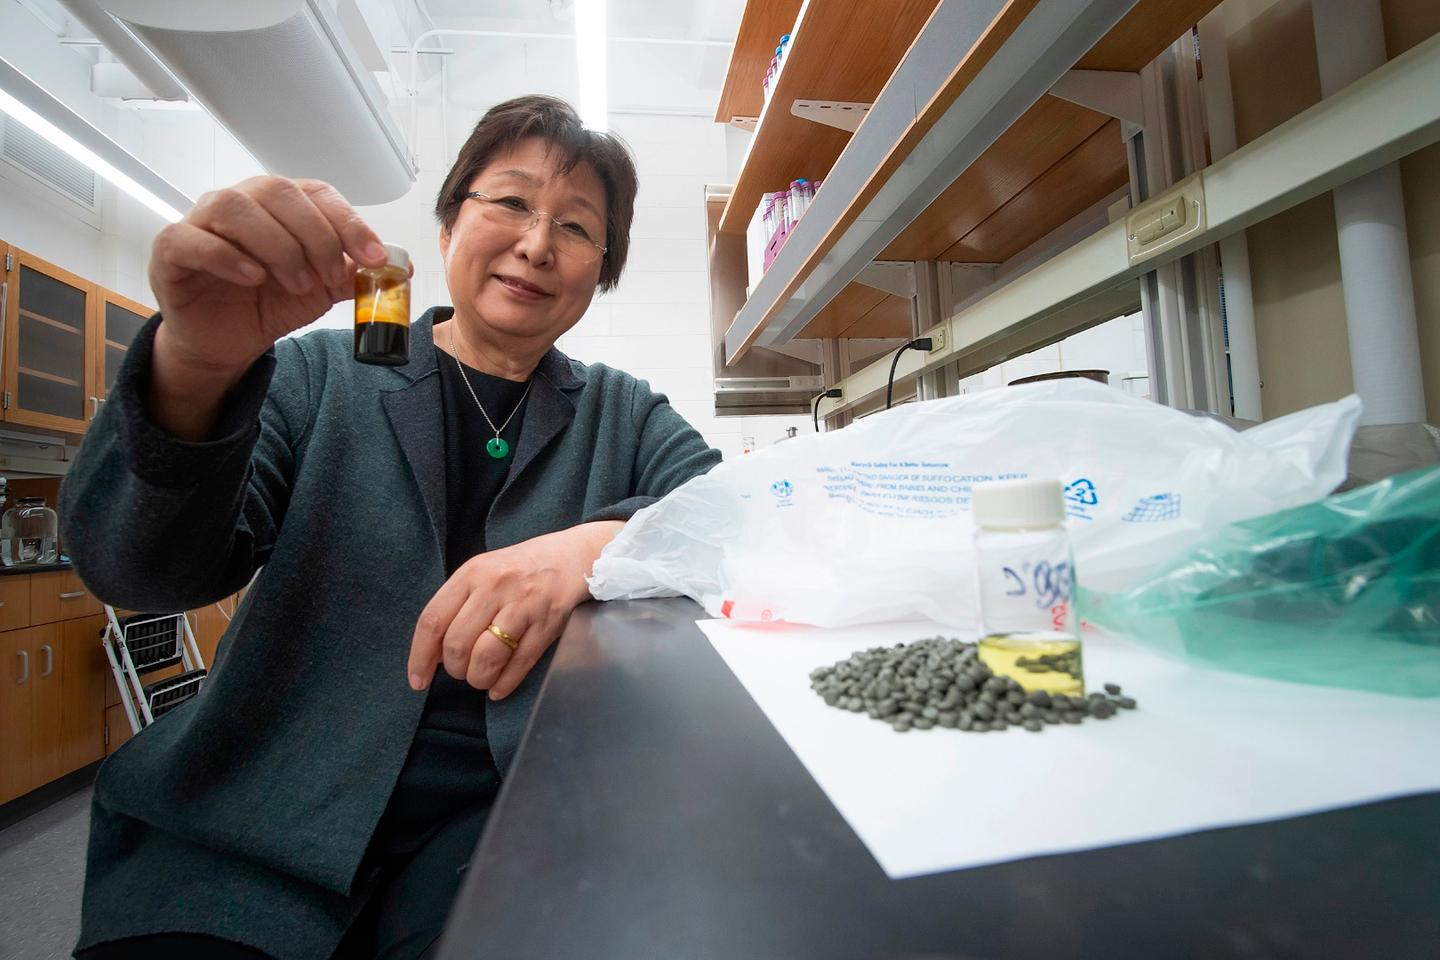 Chemical engineer Linda Wang led a research team at Purdue University in coming up with a new way to convert a common plastic into oil, opening up some exciting possibilities